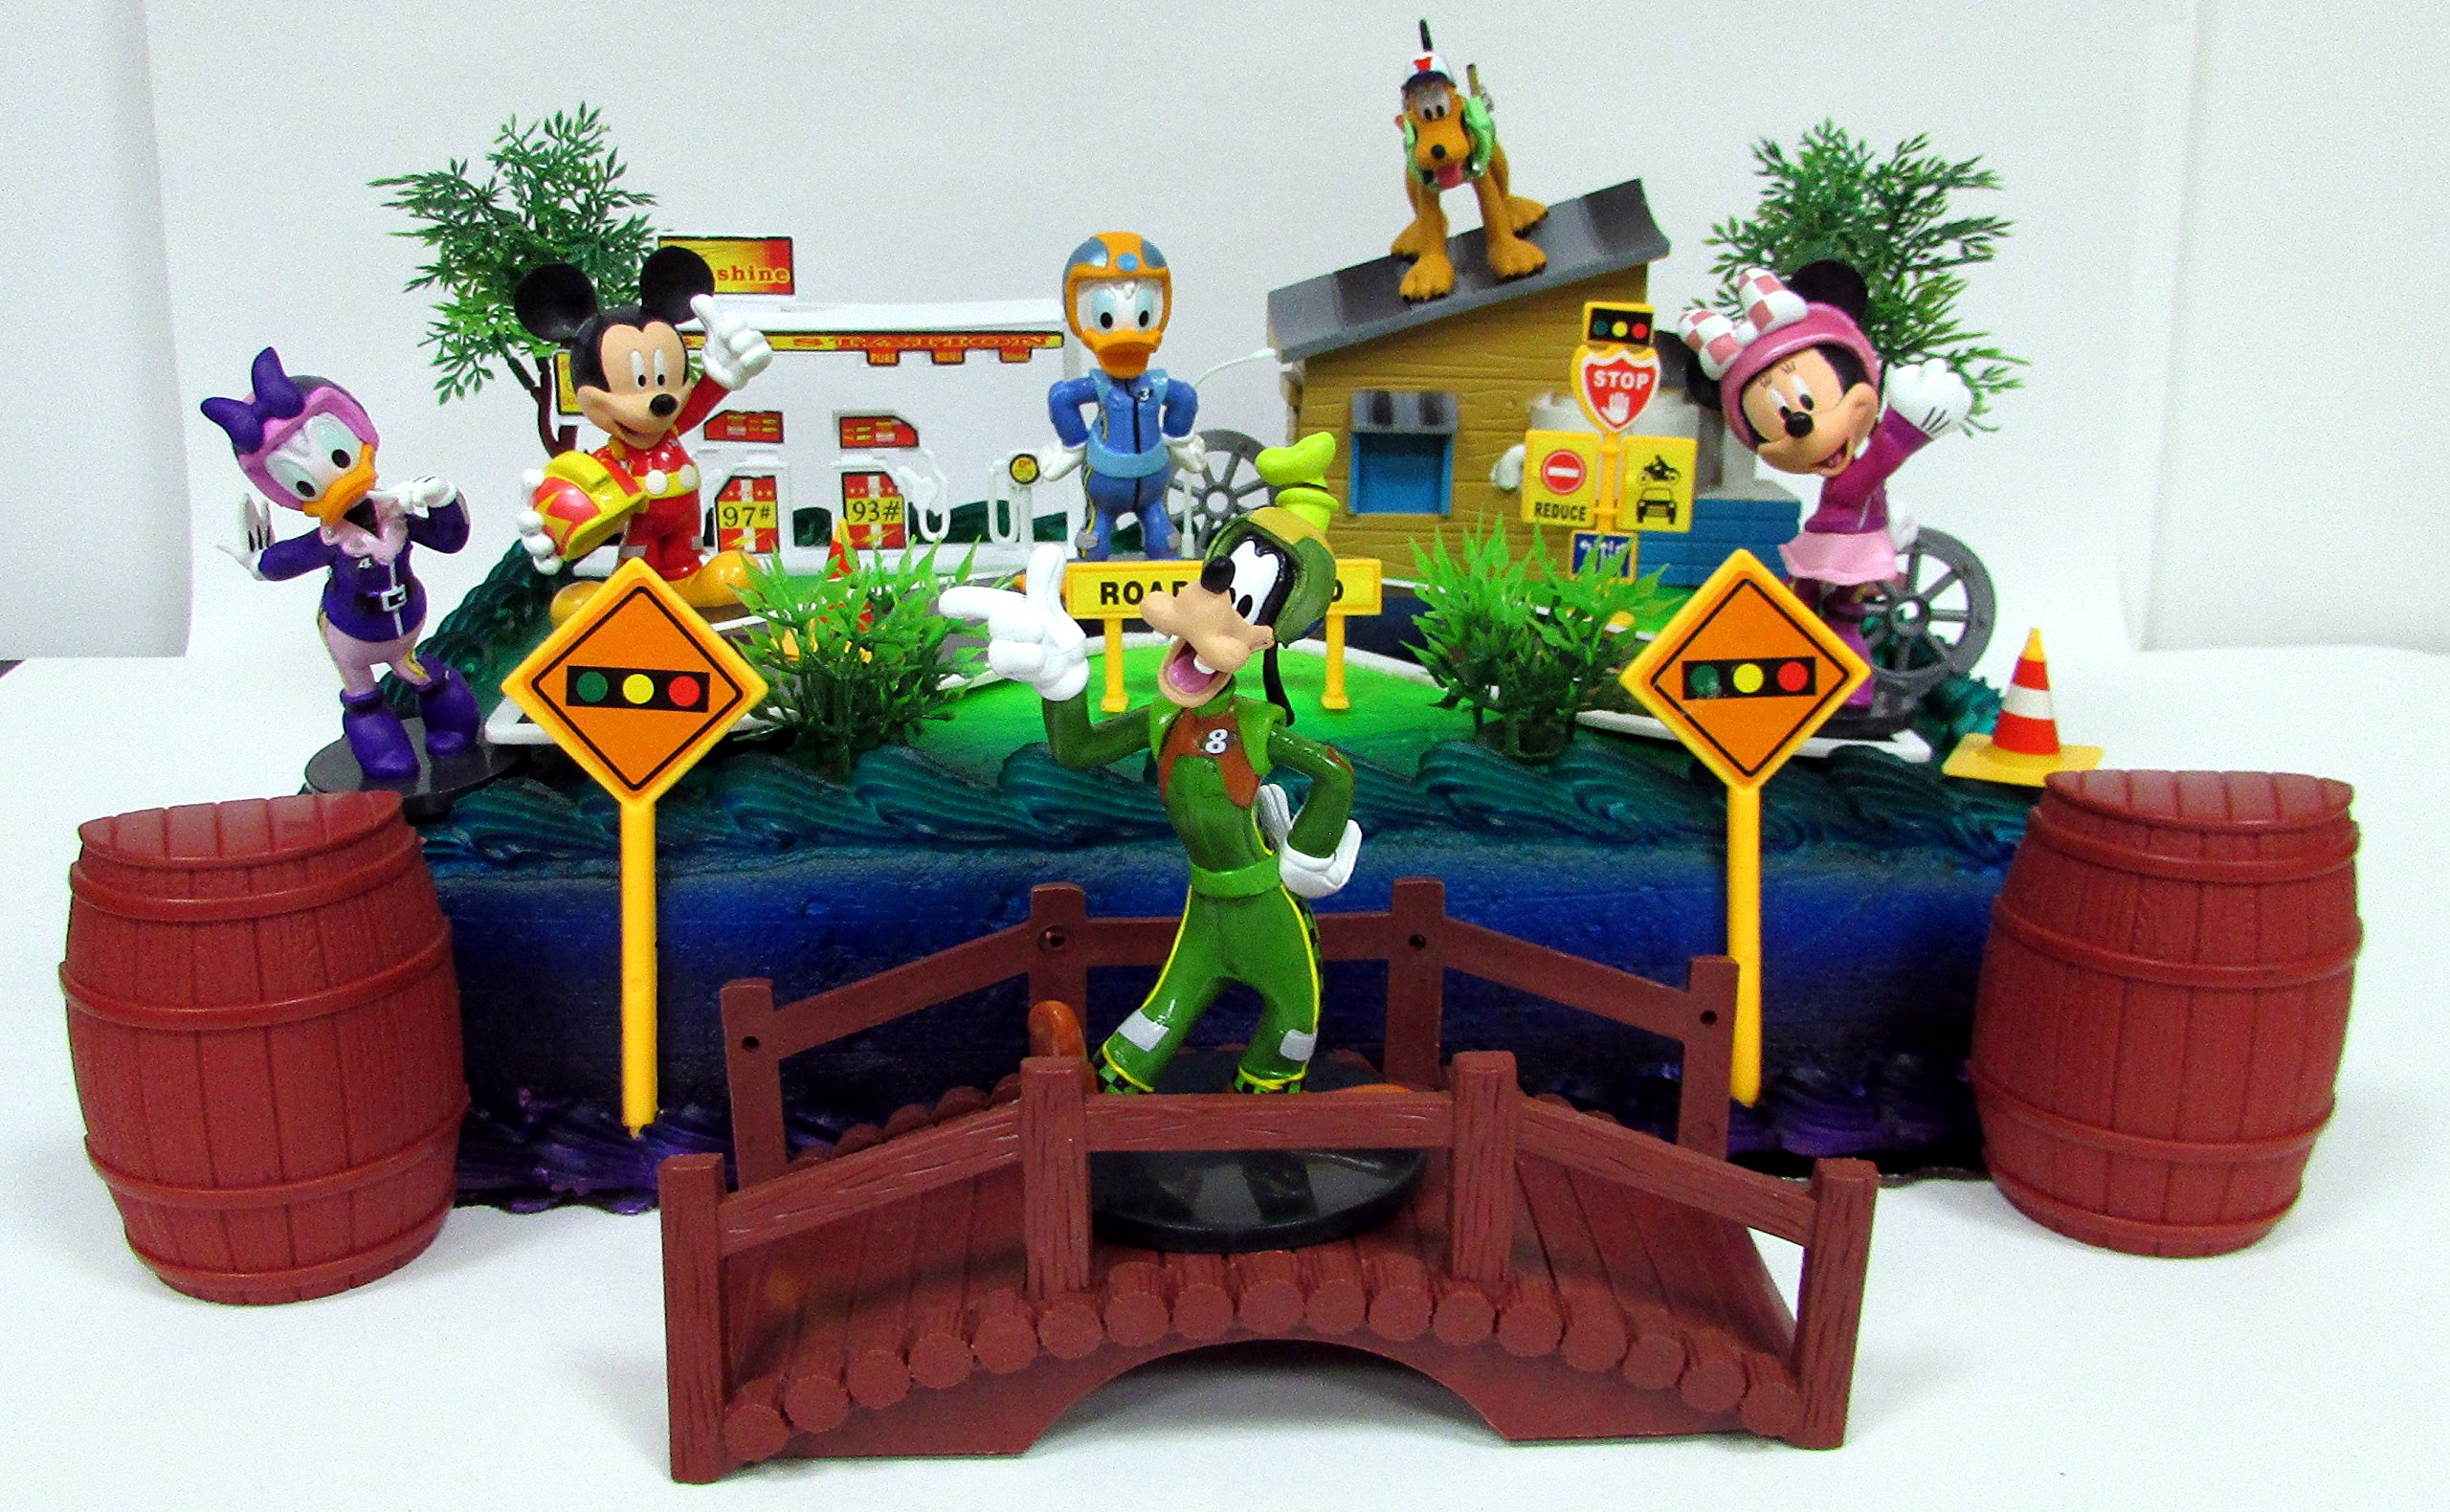 Mickey Mouse Clubhouse MICKEY AND THE ROADSTER RACERS Birthday Cake Topper Set Featuring Figures and Decorative Accessories